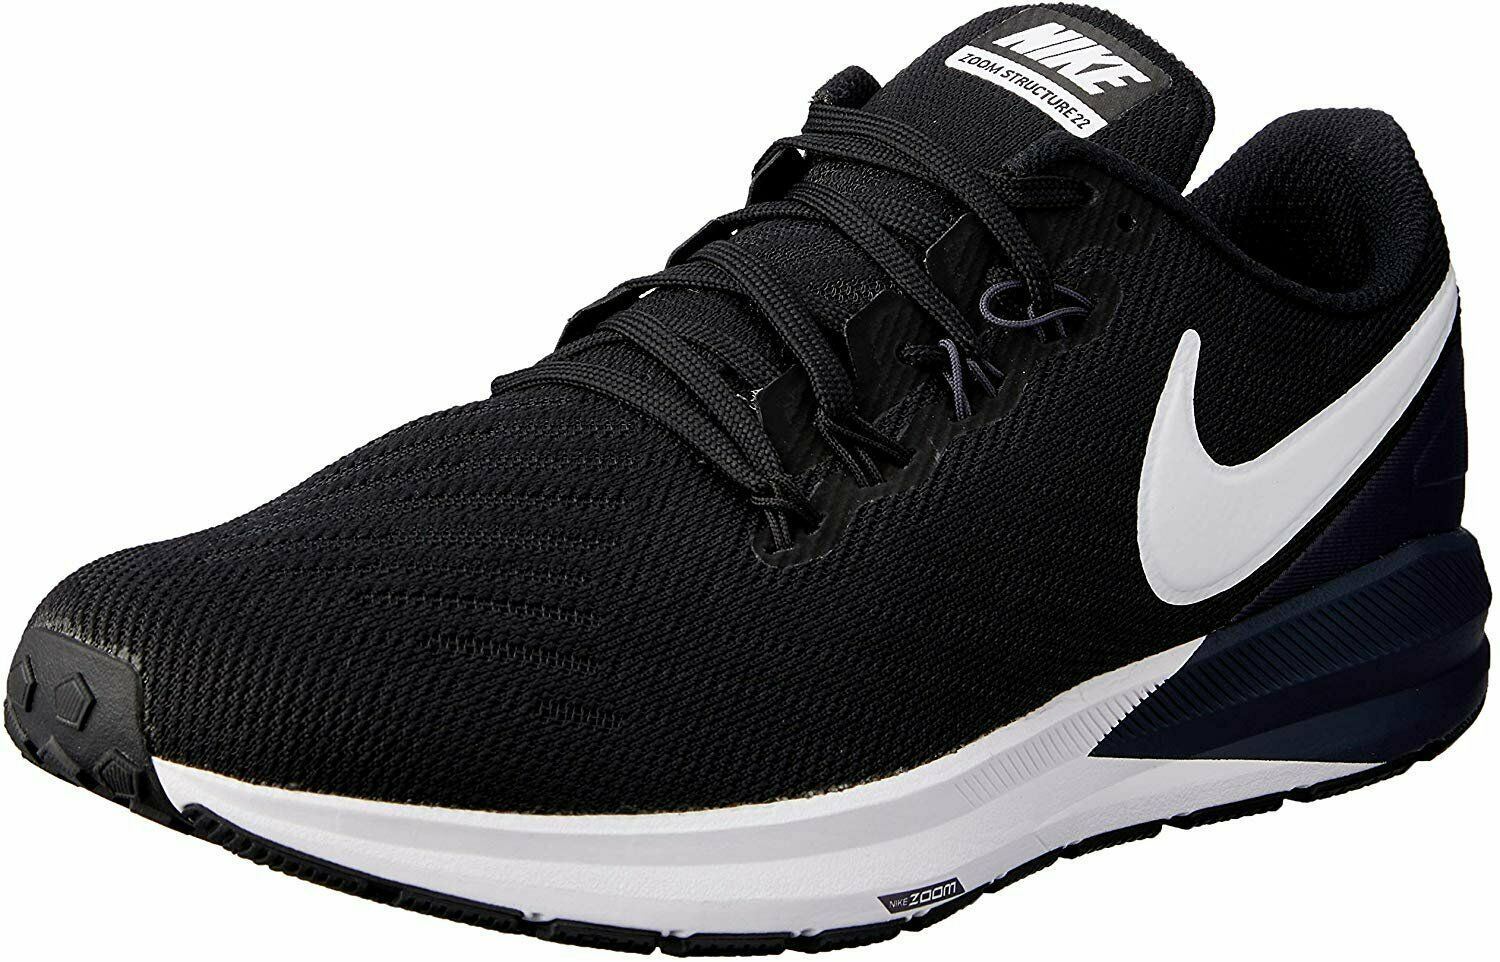 Details about Nike Men's Air Zoom Structure 22 Running